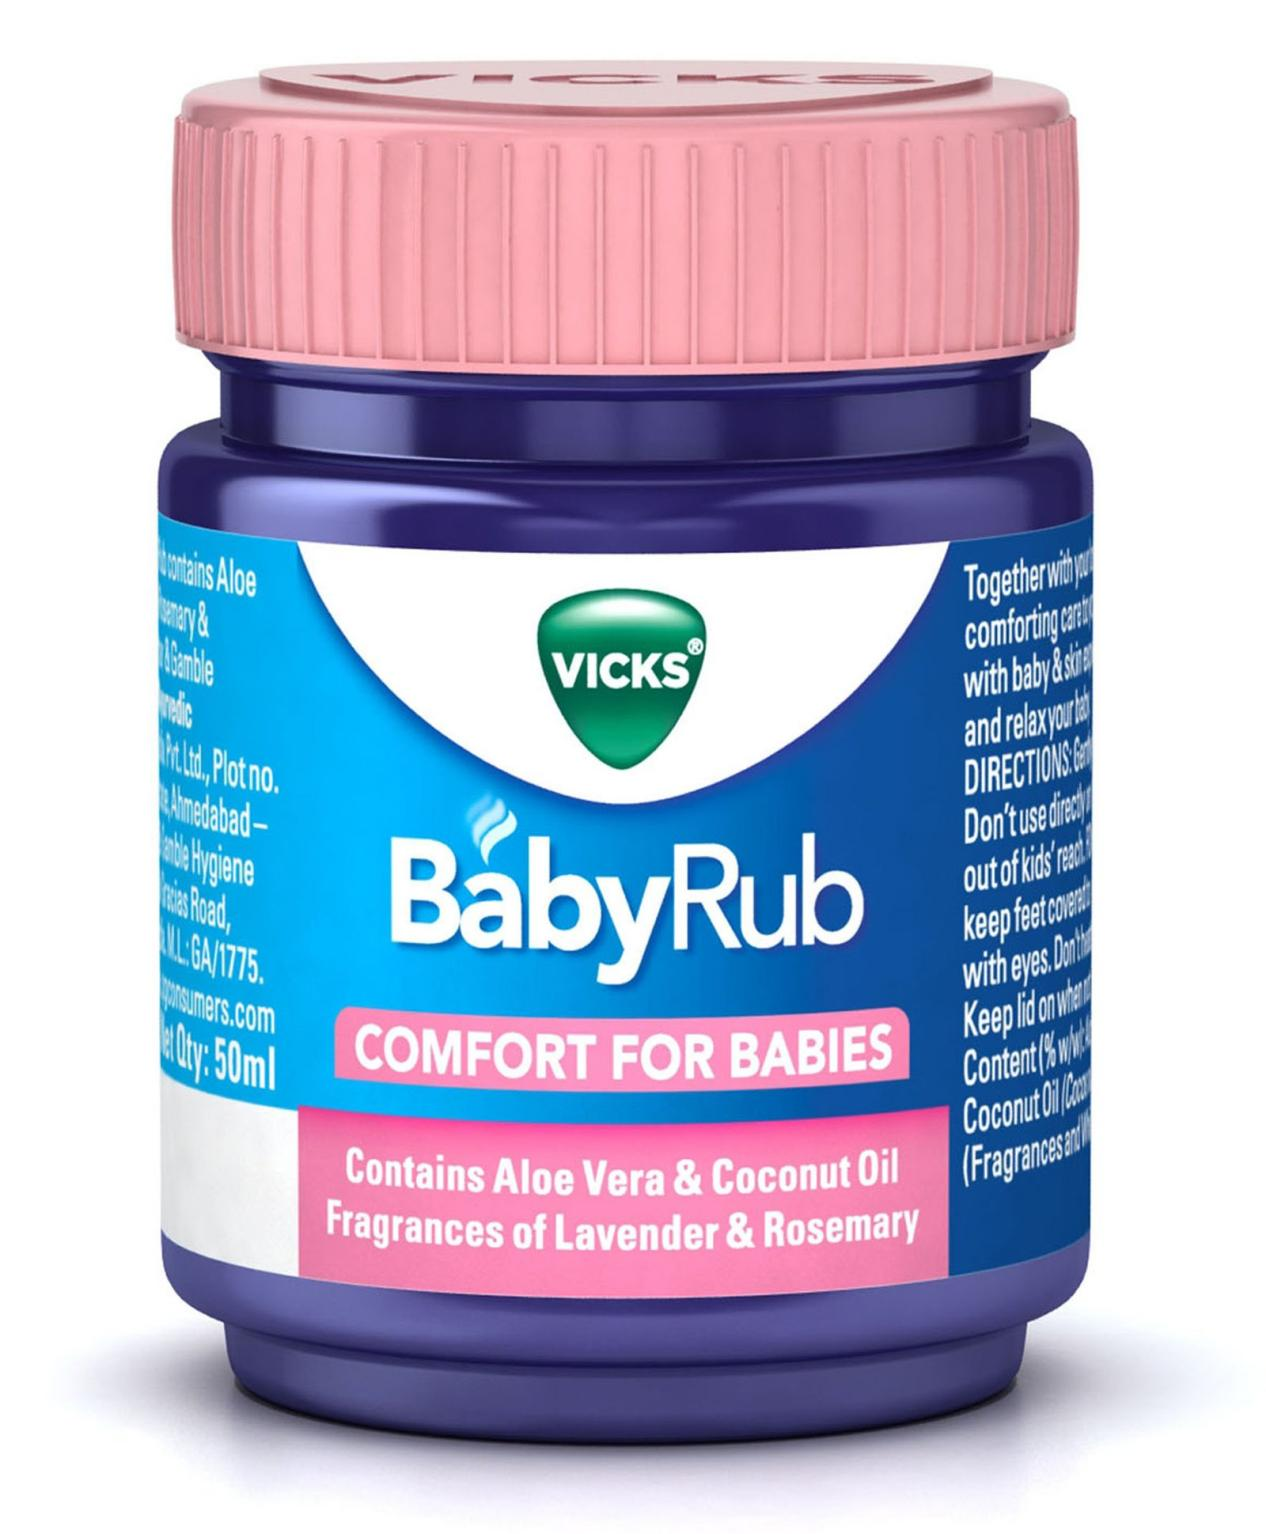 Vicks BabyRub Confort For Babies